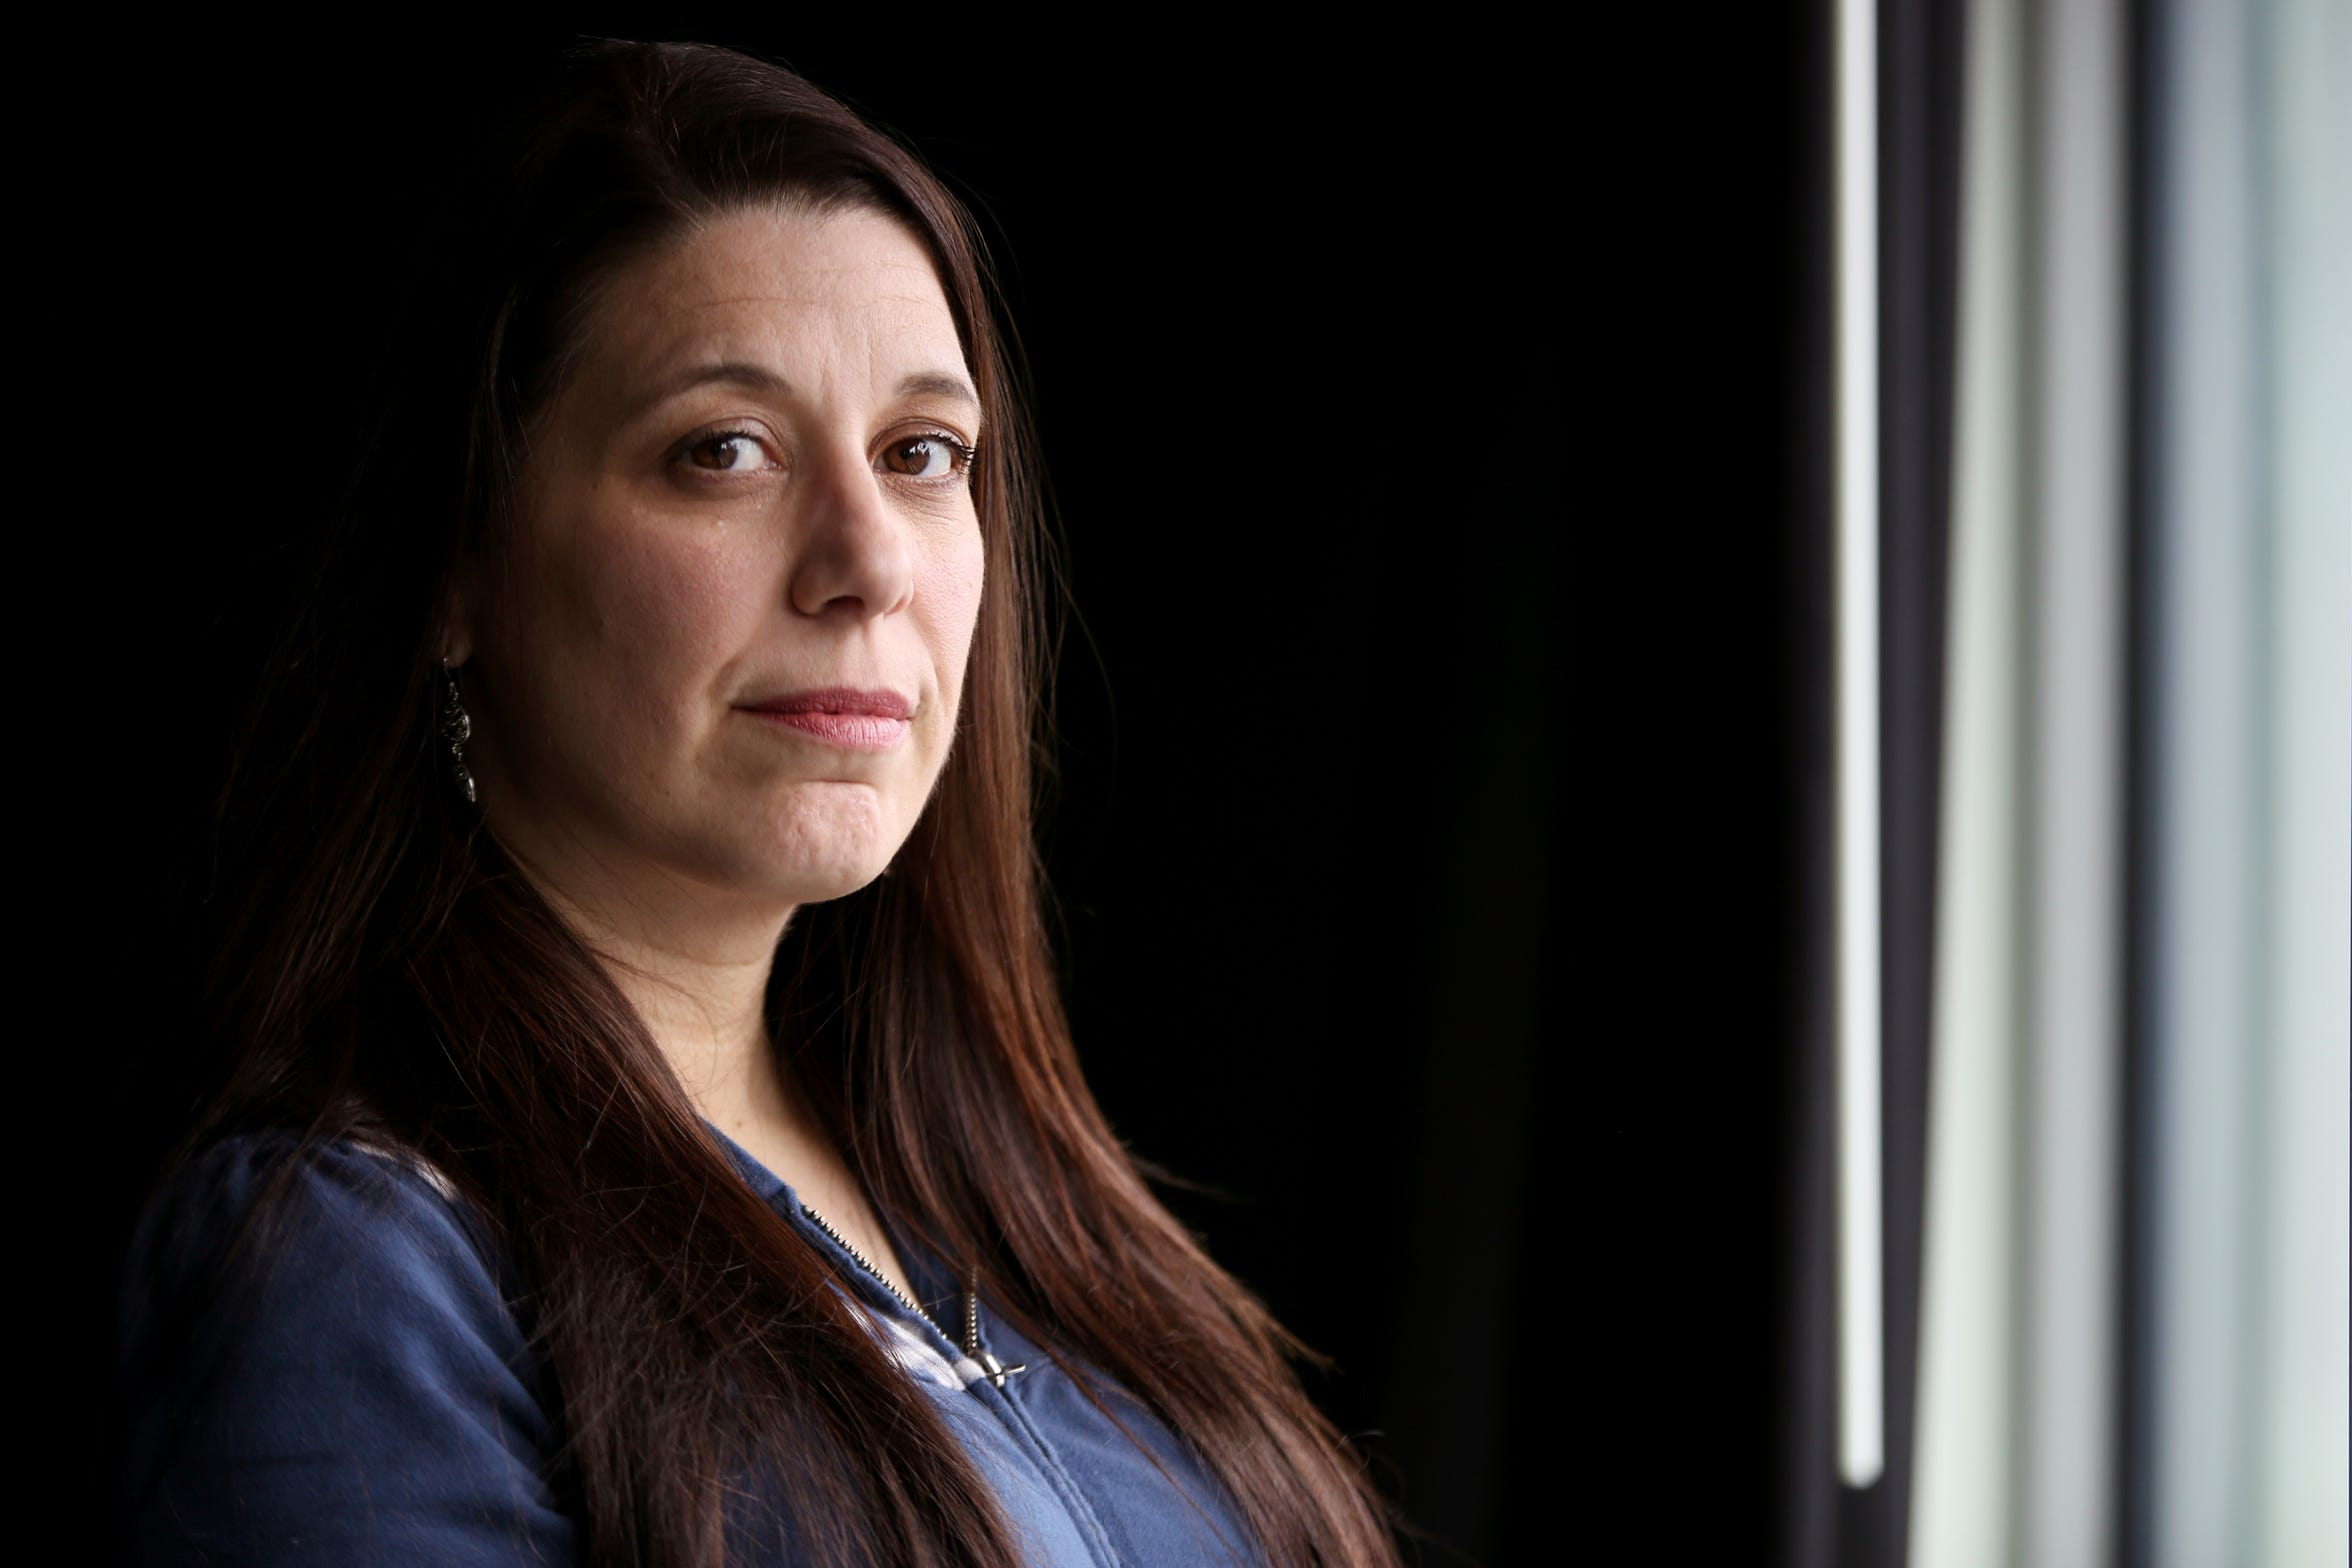 Melissa Vitellaro, of Portland, and other former inmates have filed five lawsuits accusing Coffee Creek Correctional Facility of allowing sex abuse, following a pattern of sexual misconduct at the women's facility. Photographed at the Statesman Journal in Salem on Tuesday, Feb. 26, 2019.